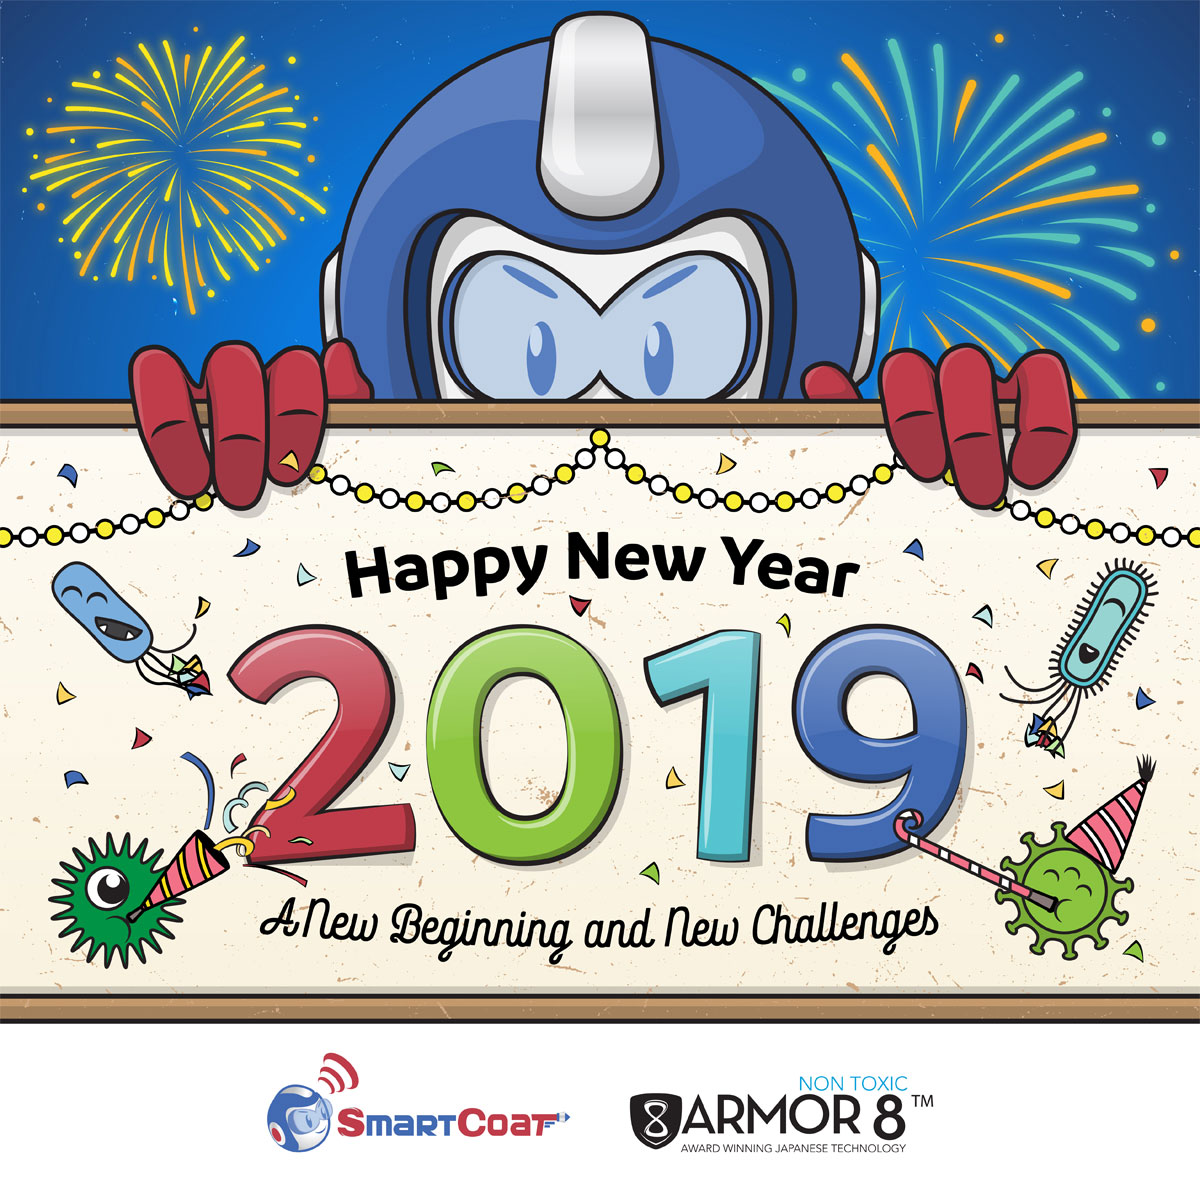 SmartCoat and Armor8 Happy New Year 2019 Facebook Post Design 04